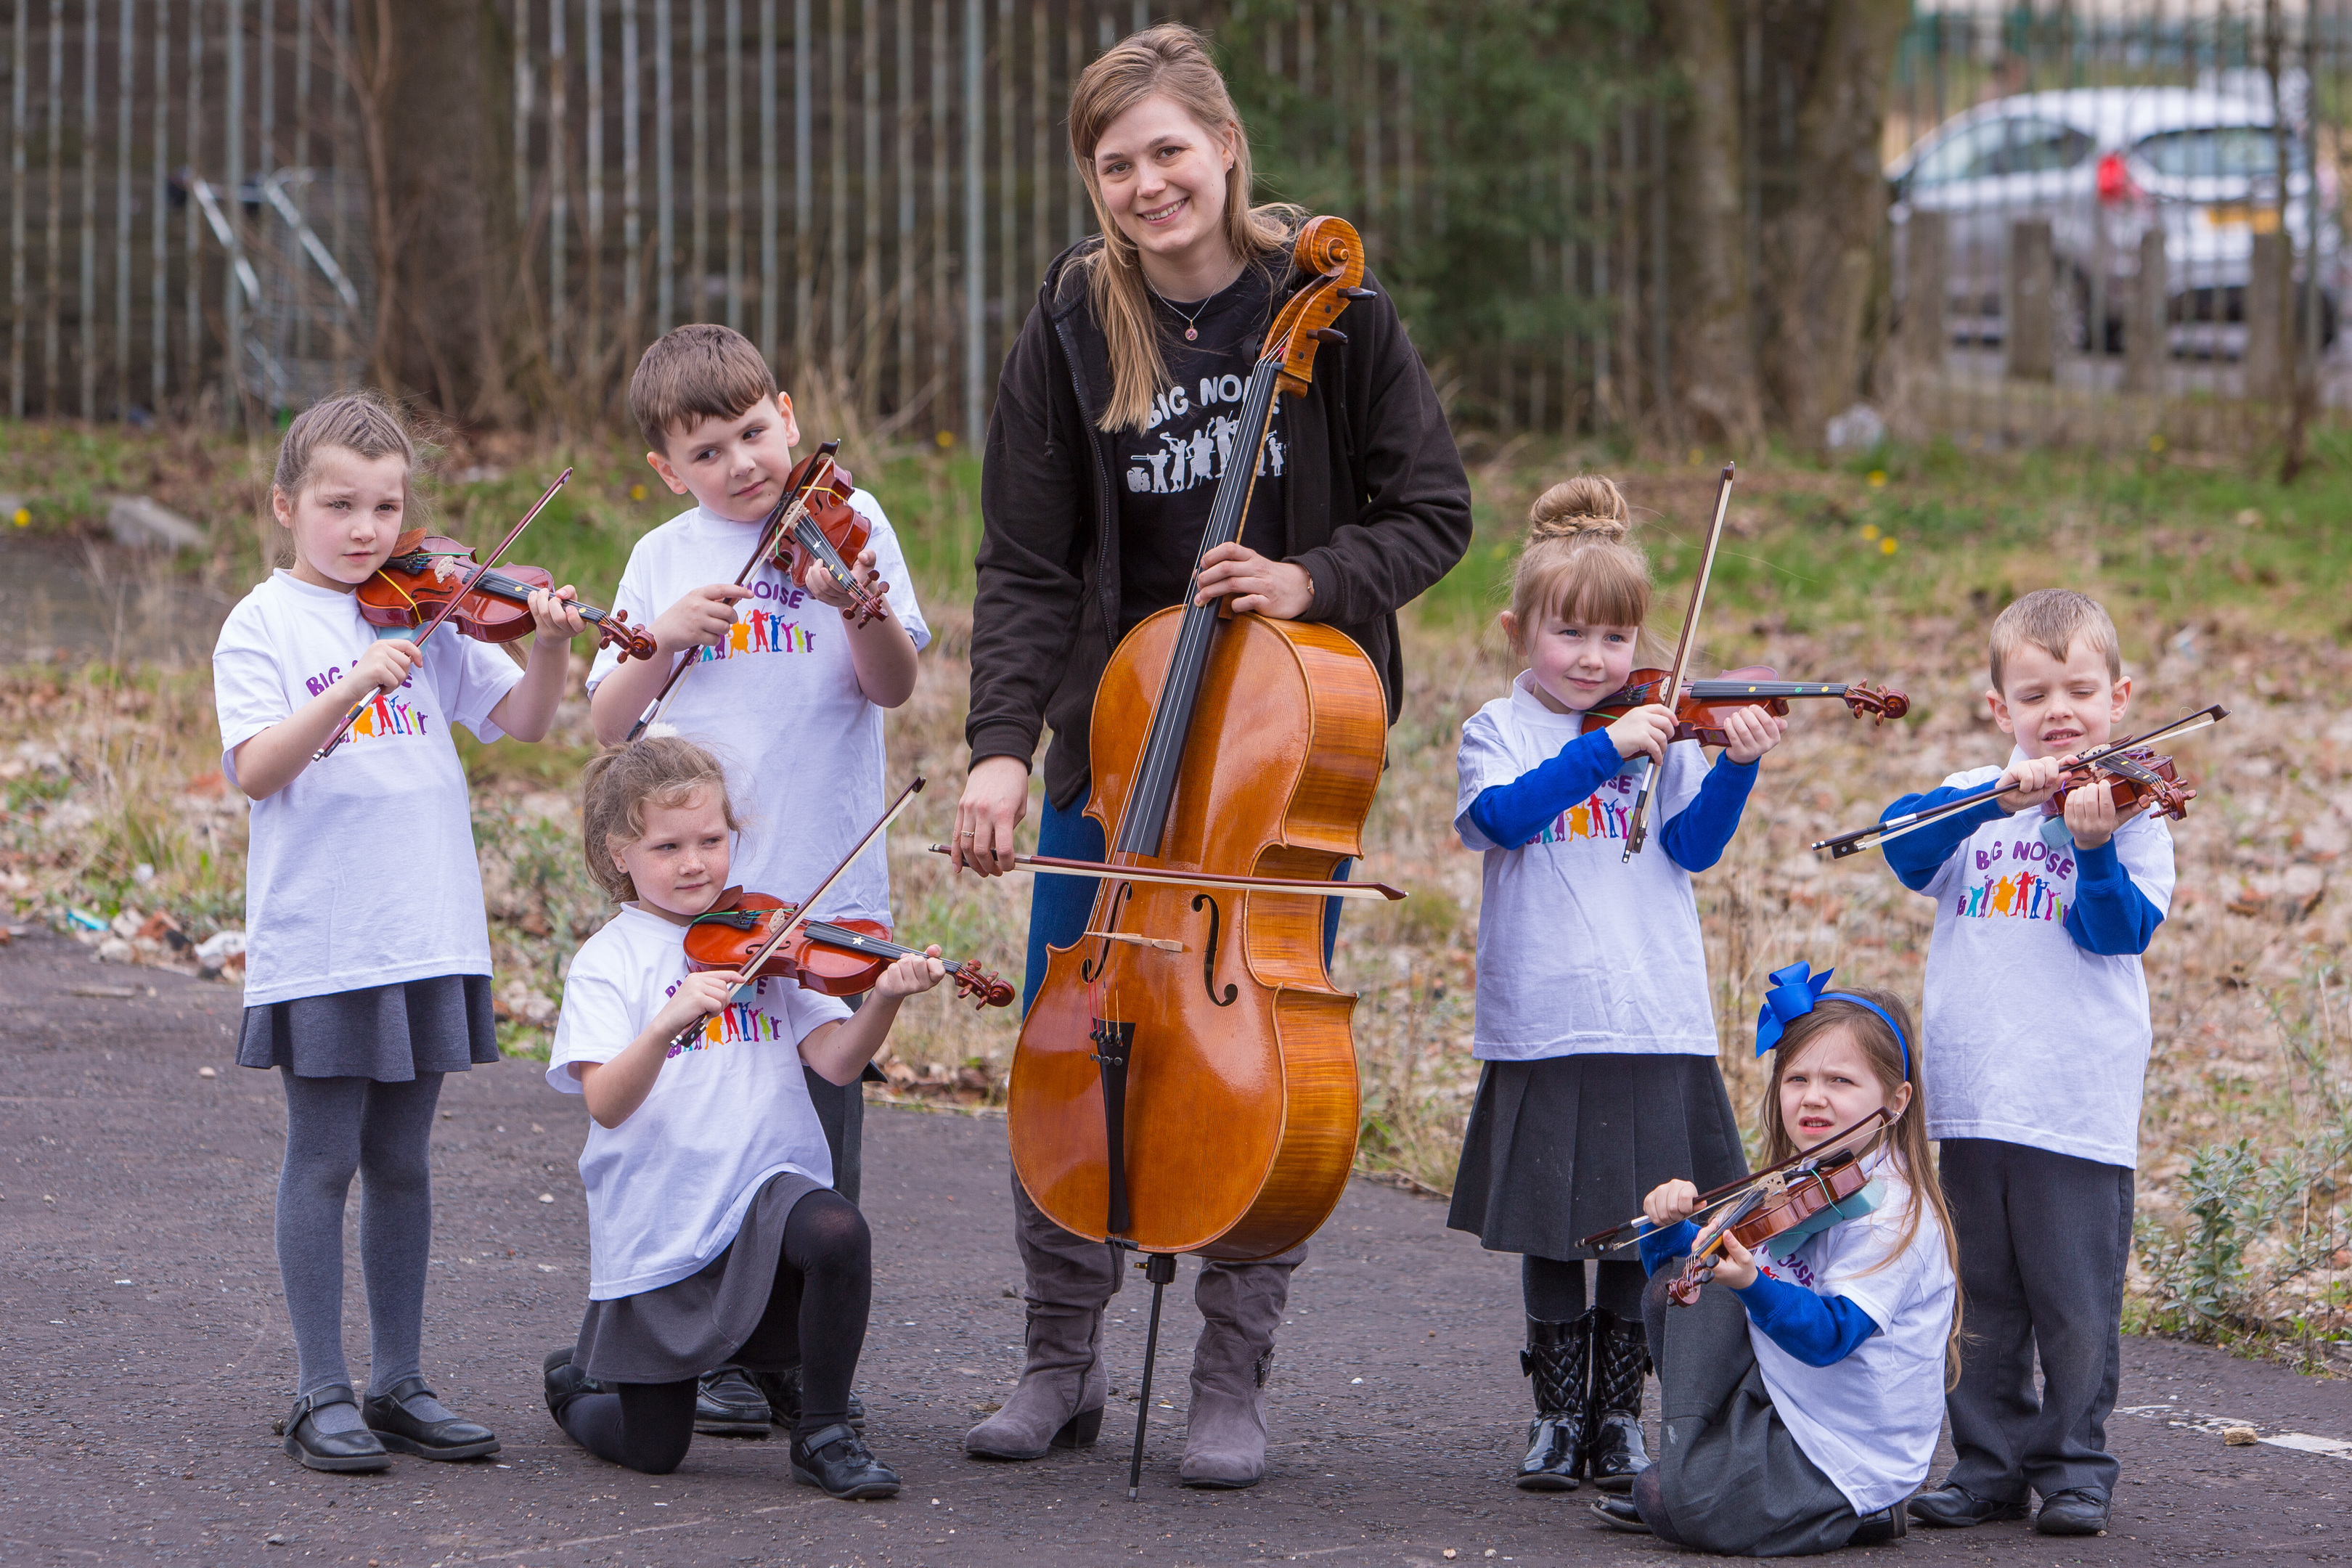 Sistema Scotland musicians visited Douglas to engage with children and families